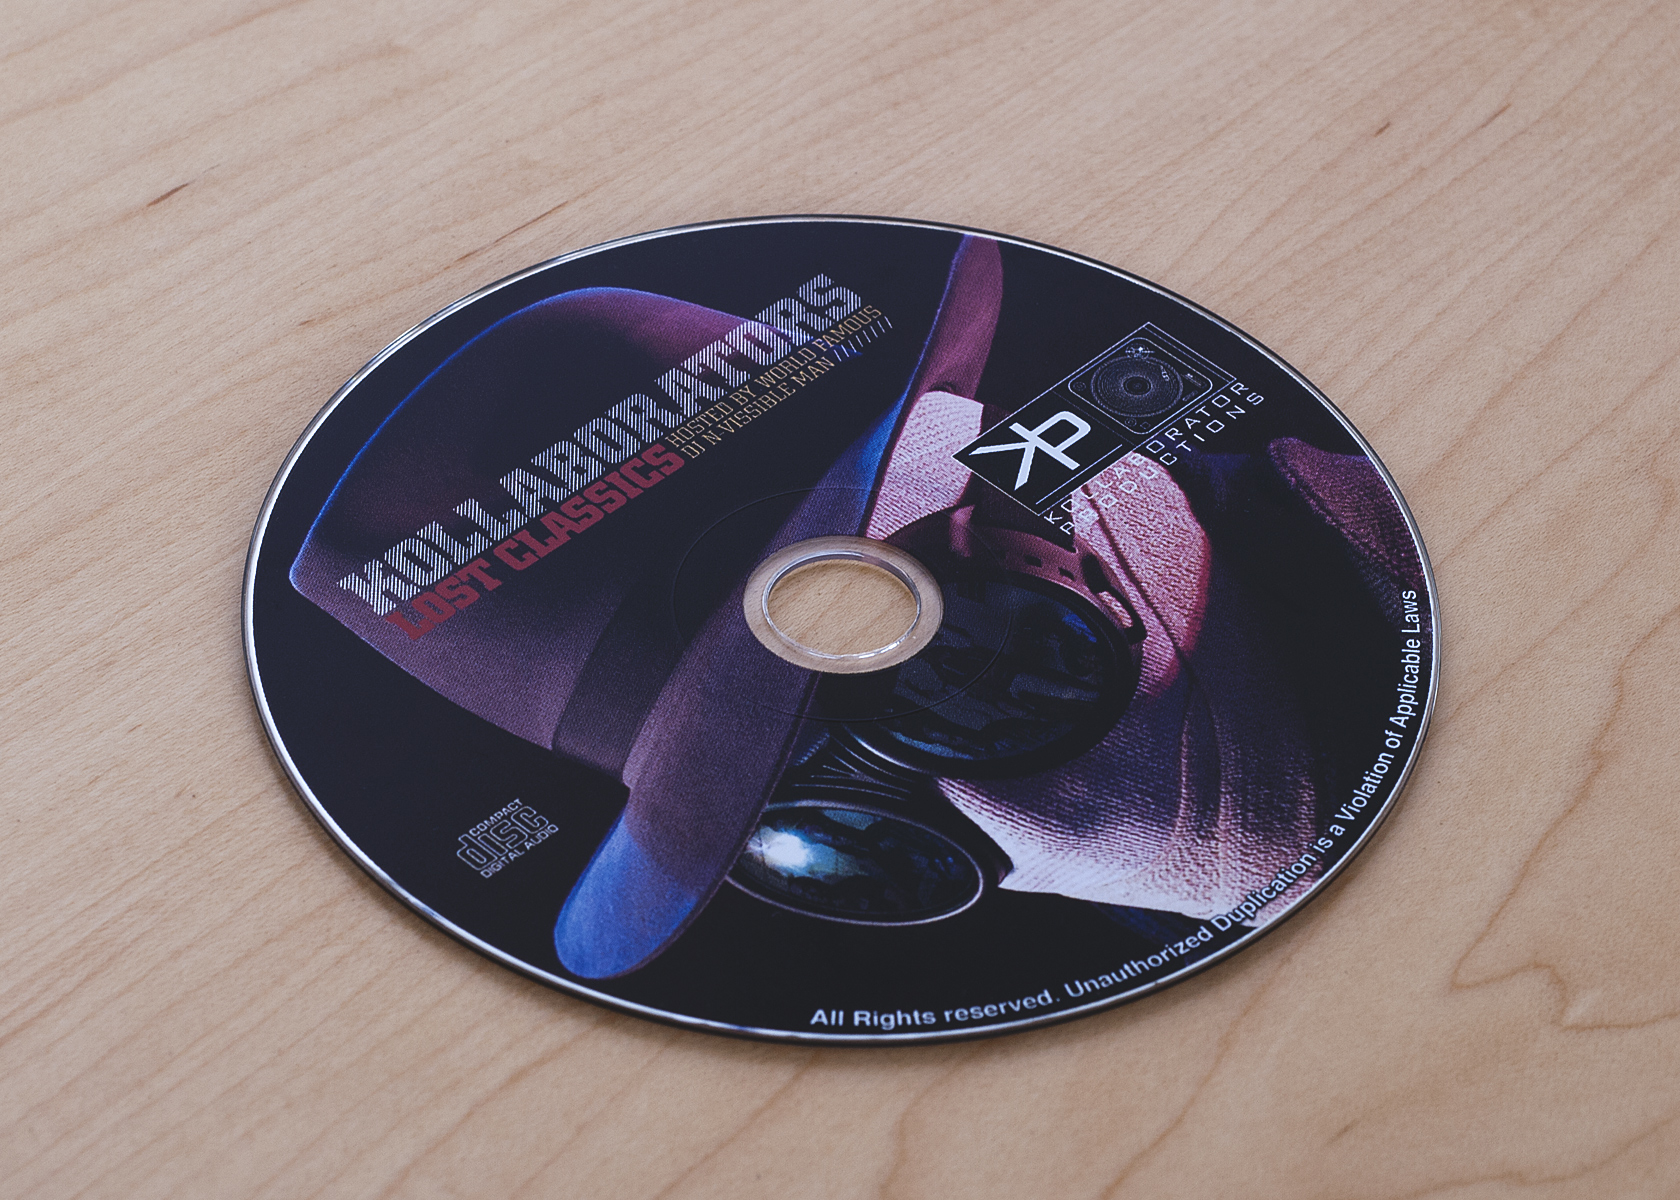 Kollaborators_Lost_Disc_1680x1200_TRT